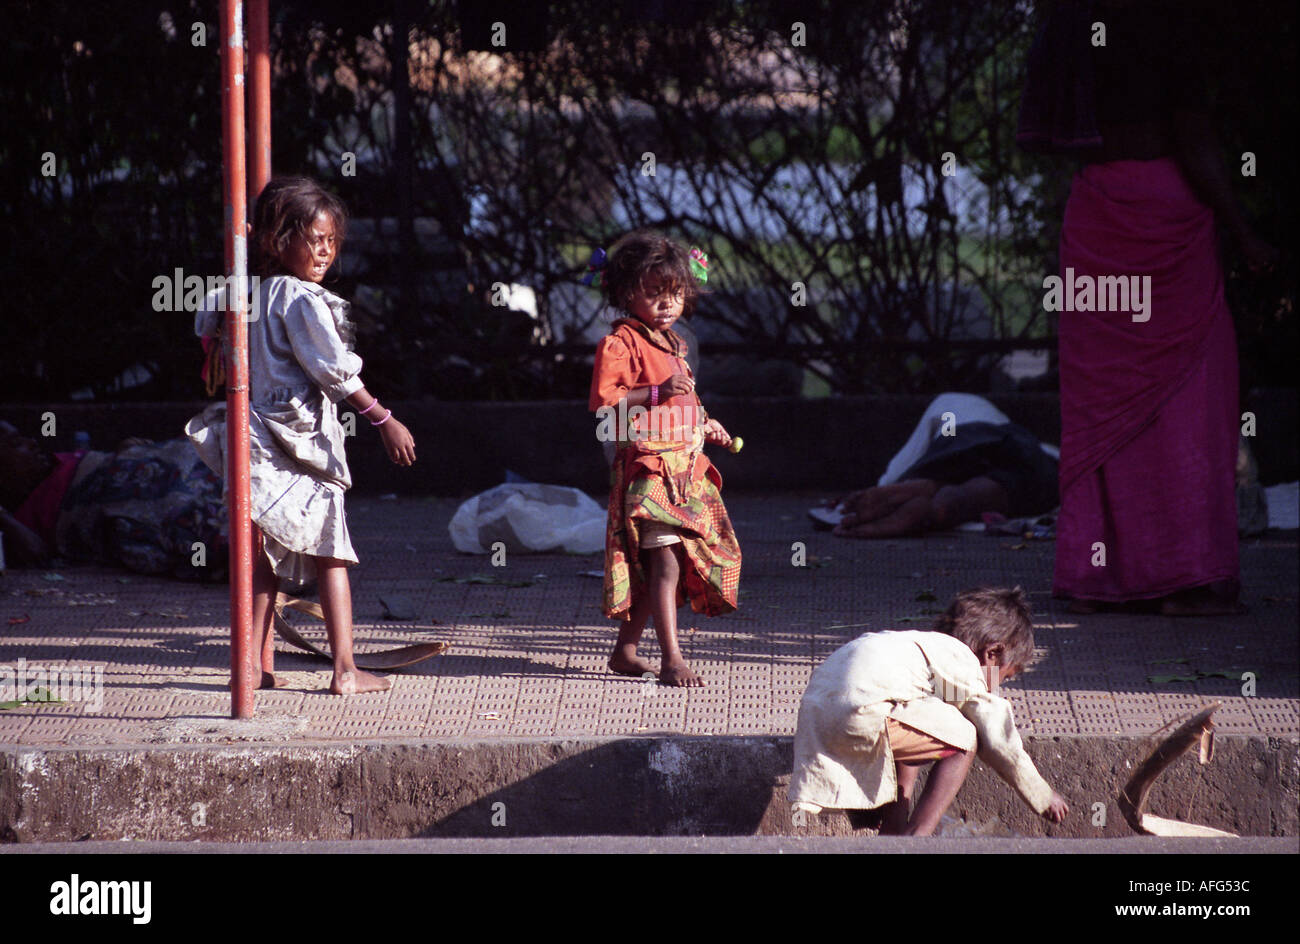 a a homless family begging on the streets of mumbai india - Stock Image